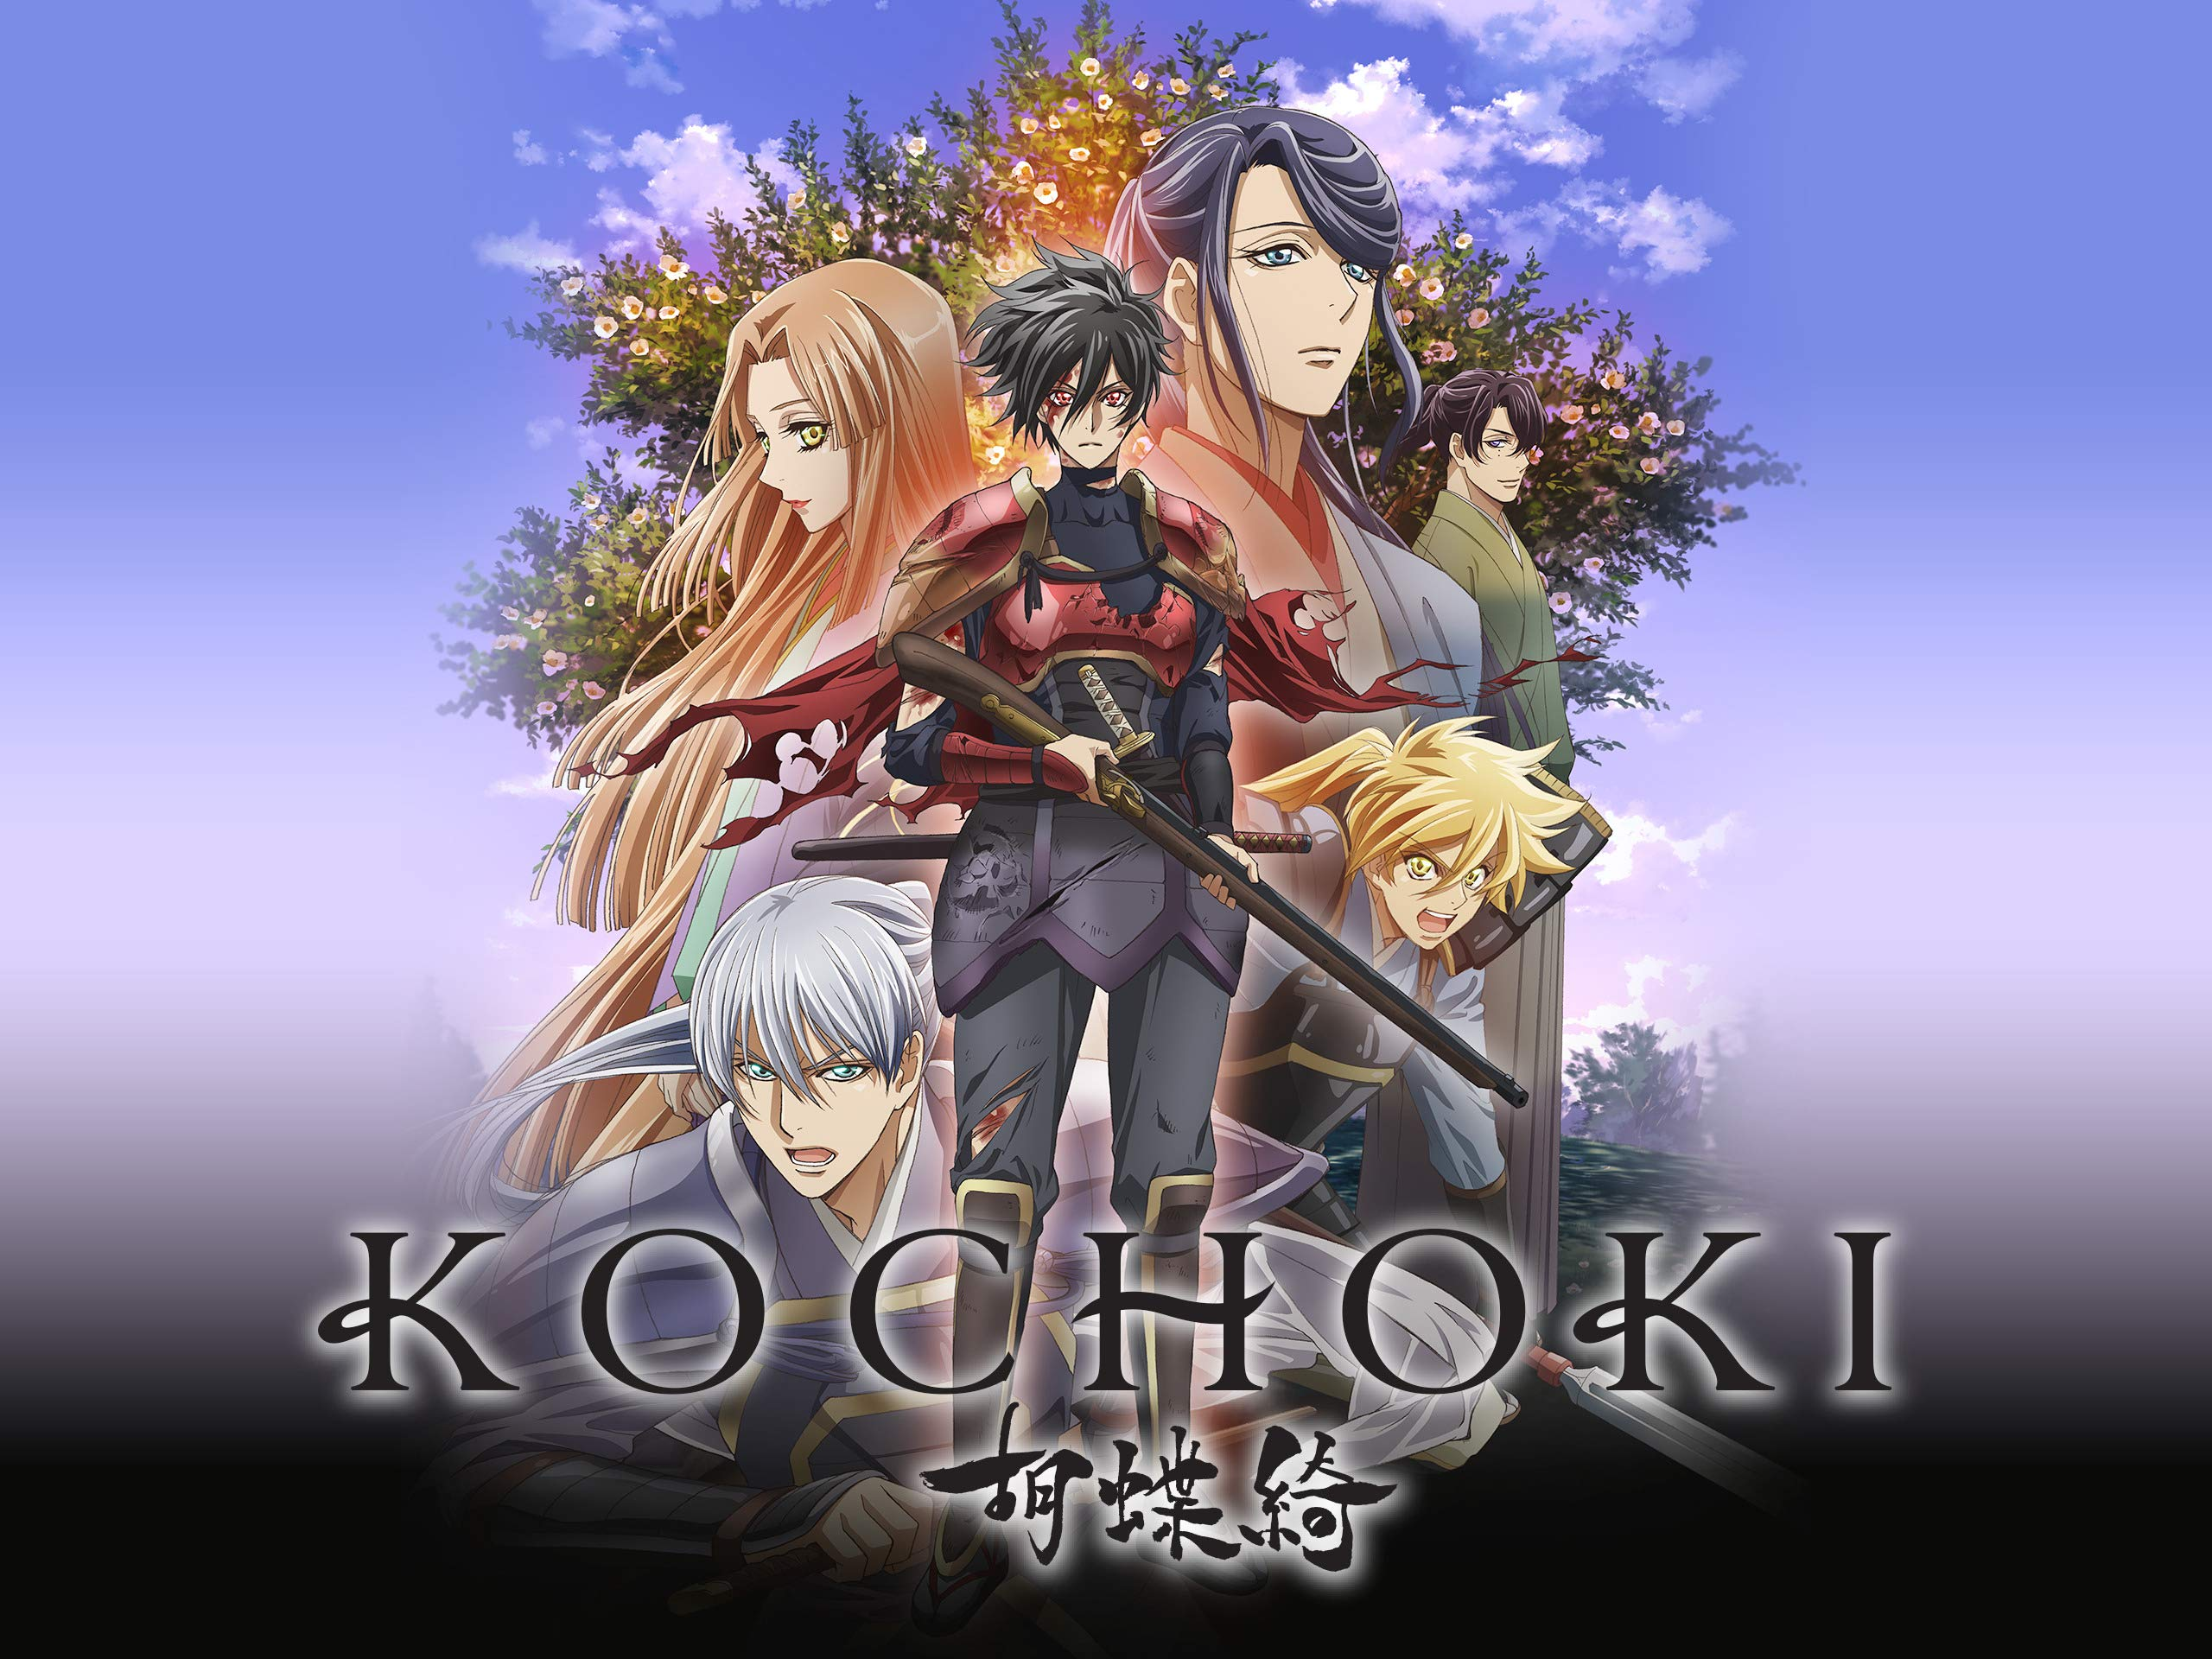 Amazon.com: Watch Kochoki (Simuldub) | Prime Video